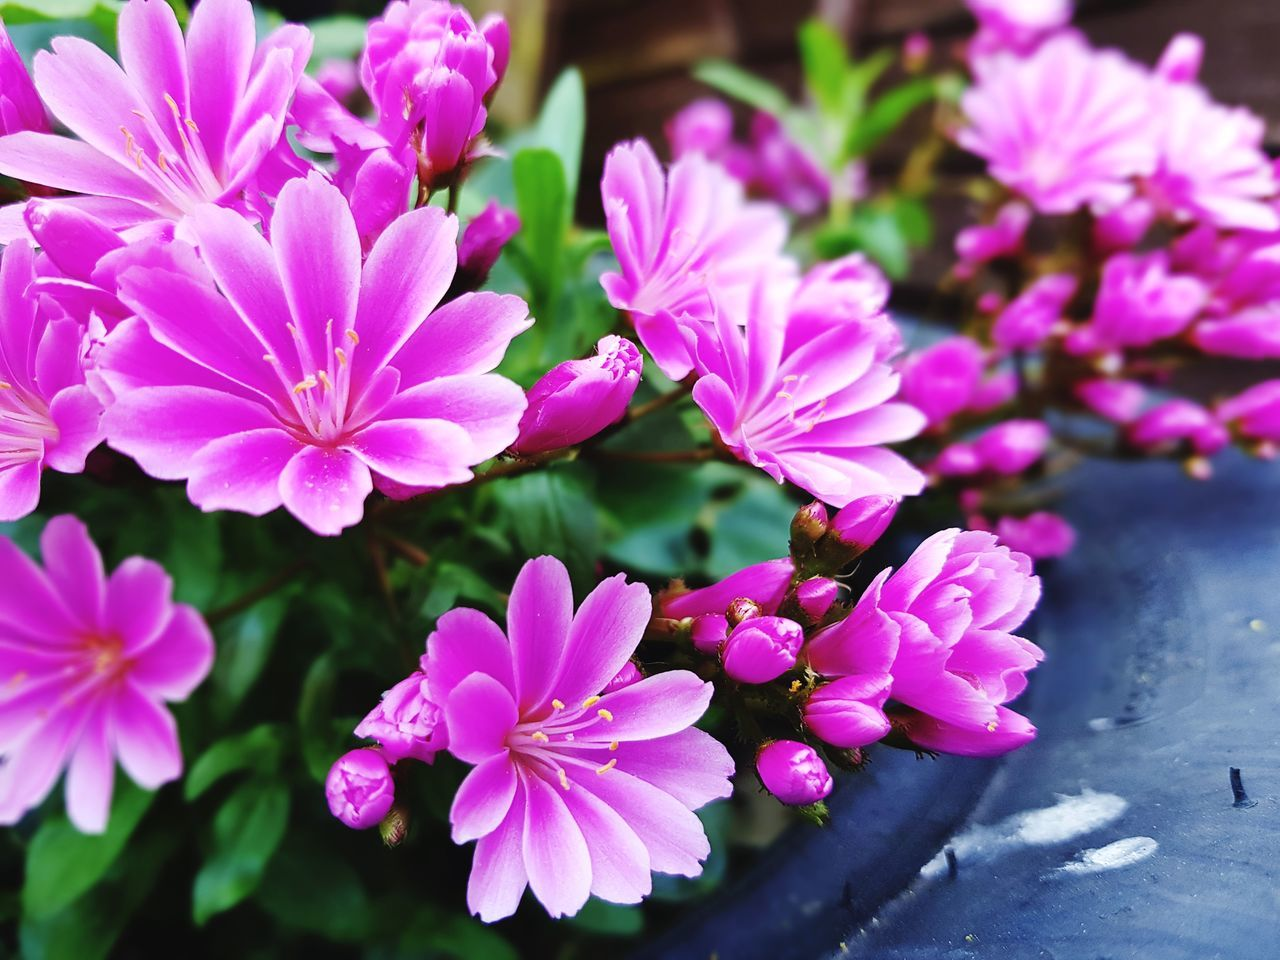 Flower Pink Color Nature Plant Purple Petal Beauty In Nature Fragility No PeopleNature Tyre Garden Focus On Foreground Pink Flower Sunlight Blooming Growth Summer Outdoors Flower Head Close-up Day Freshness Beauty In Nature Fresh